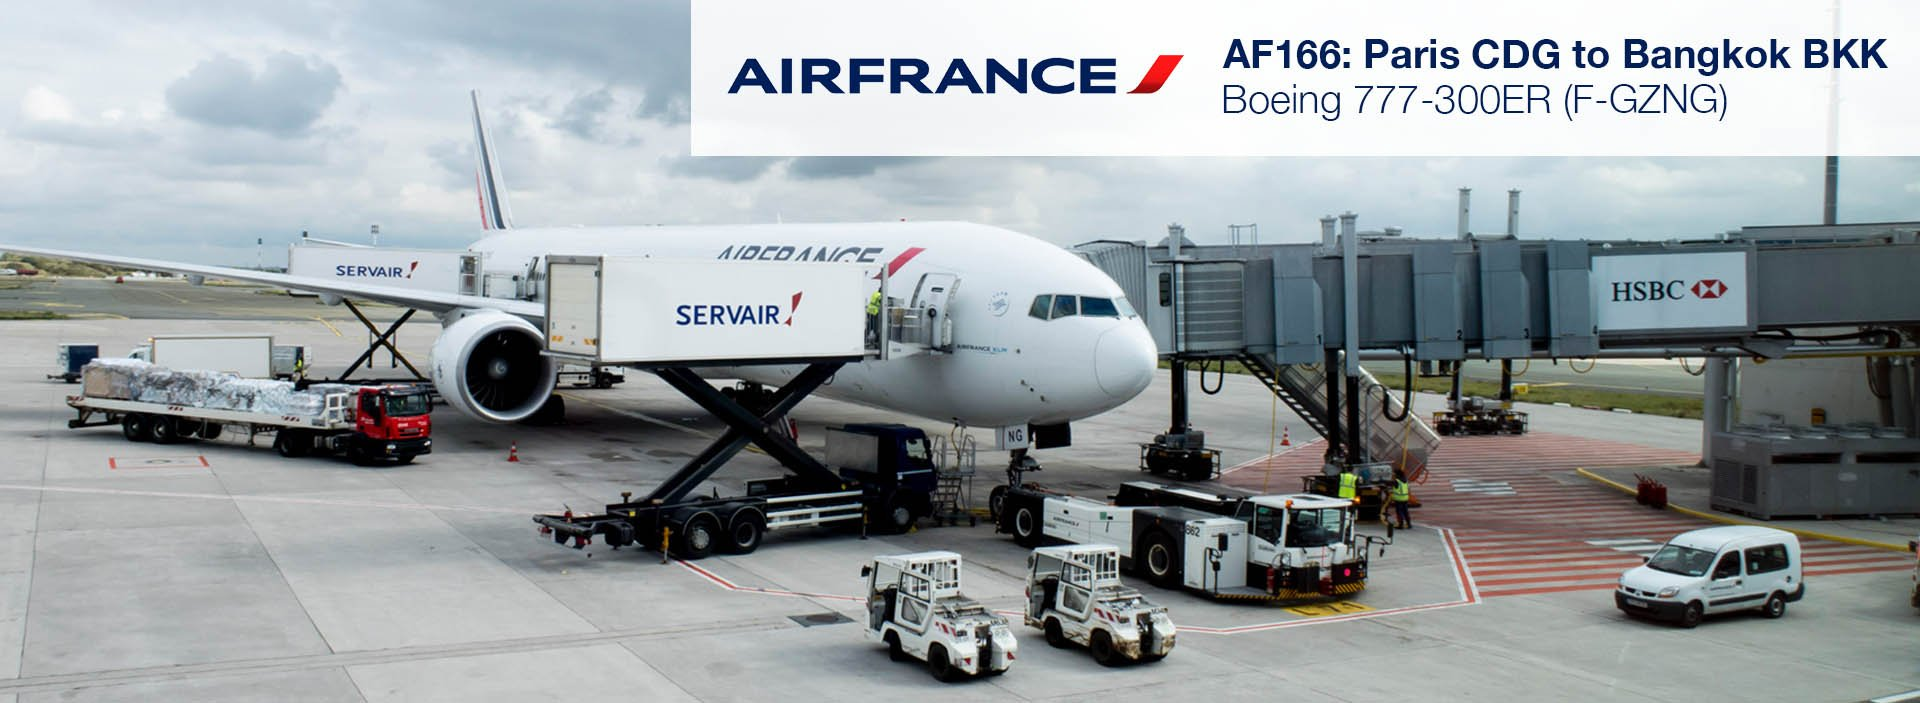 Flight Review: Air France 777-300ER Economy from Paris to Bangkok